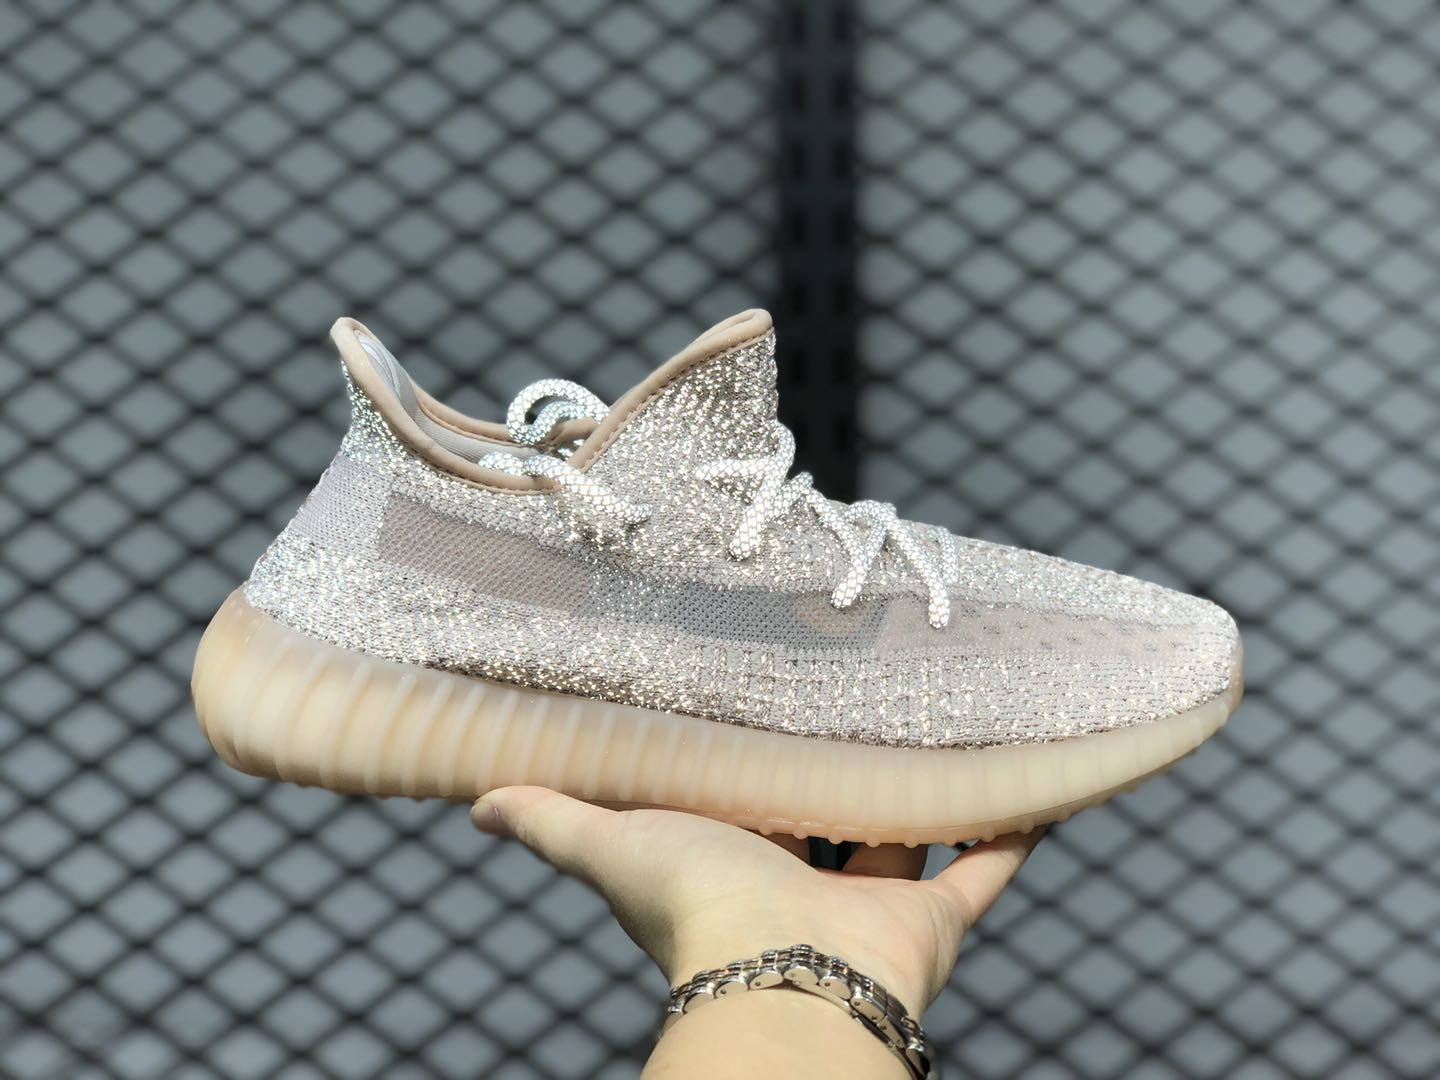 Adidas Yeezy Boost 350 V2 Synth Non